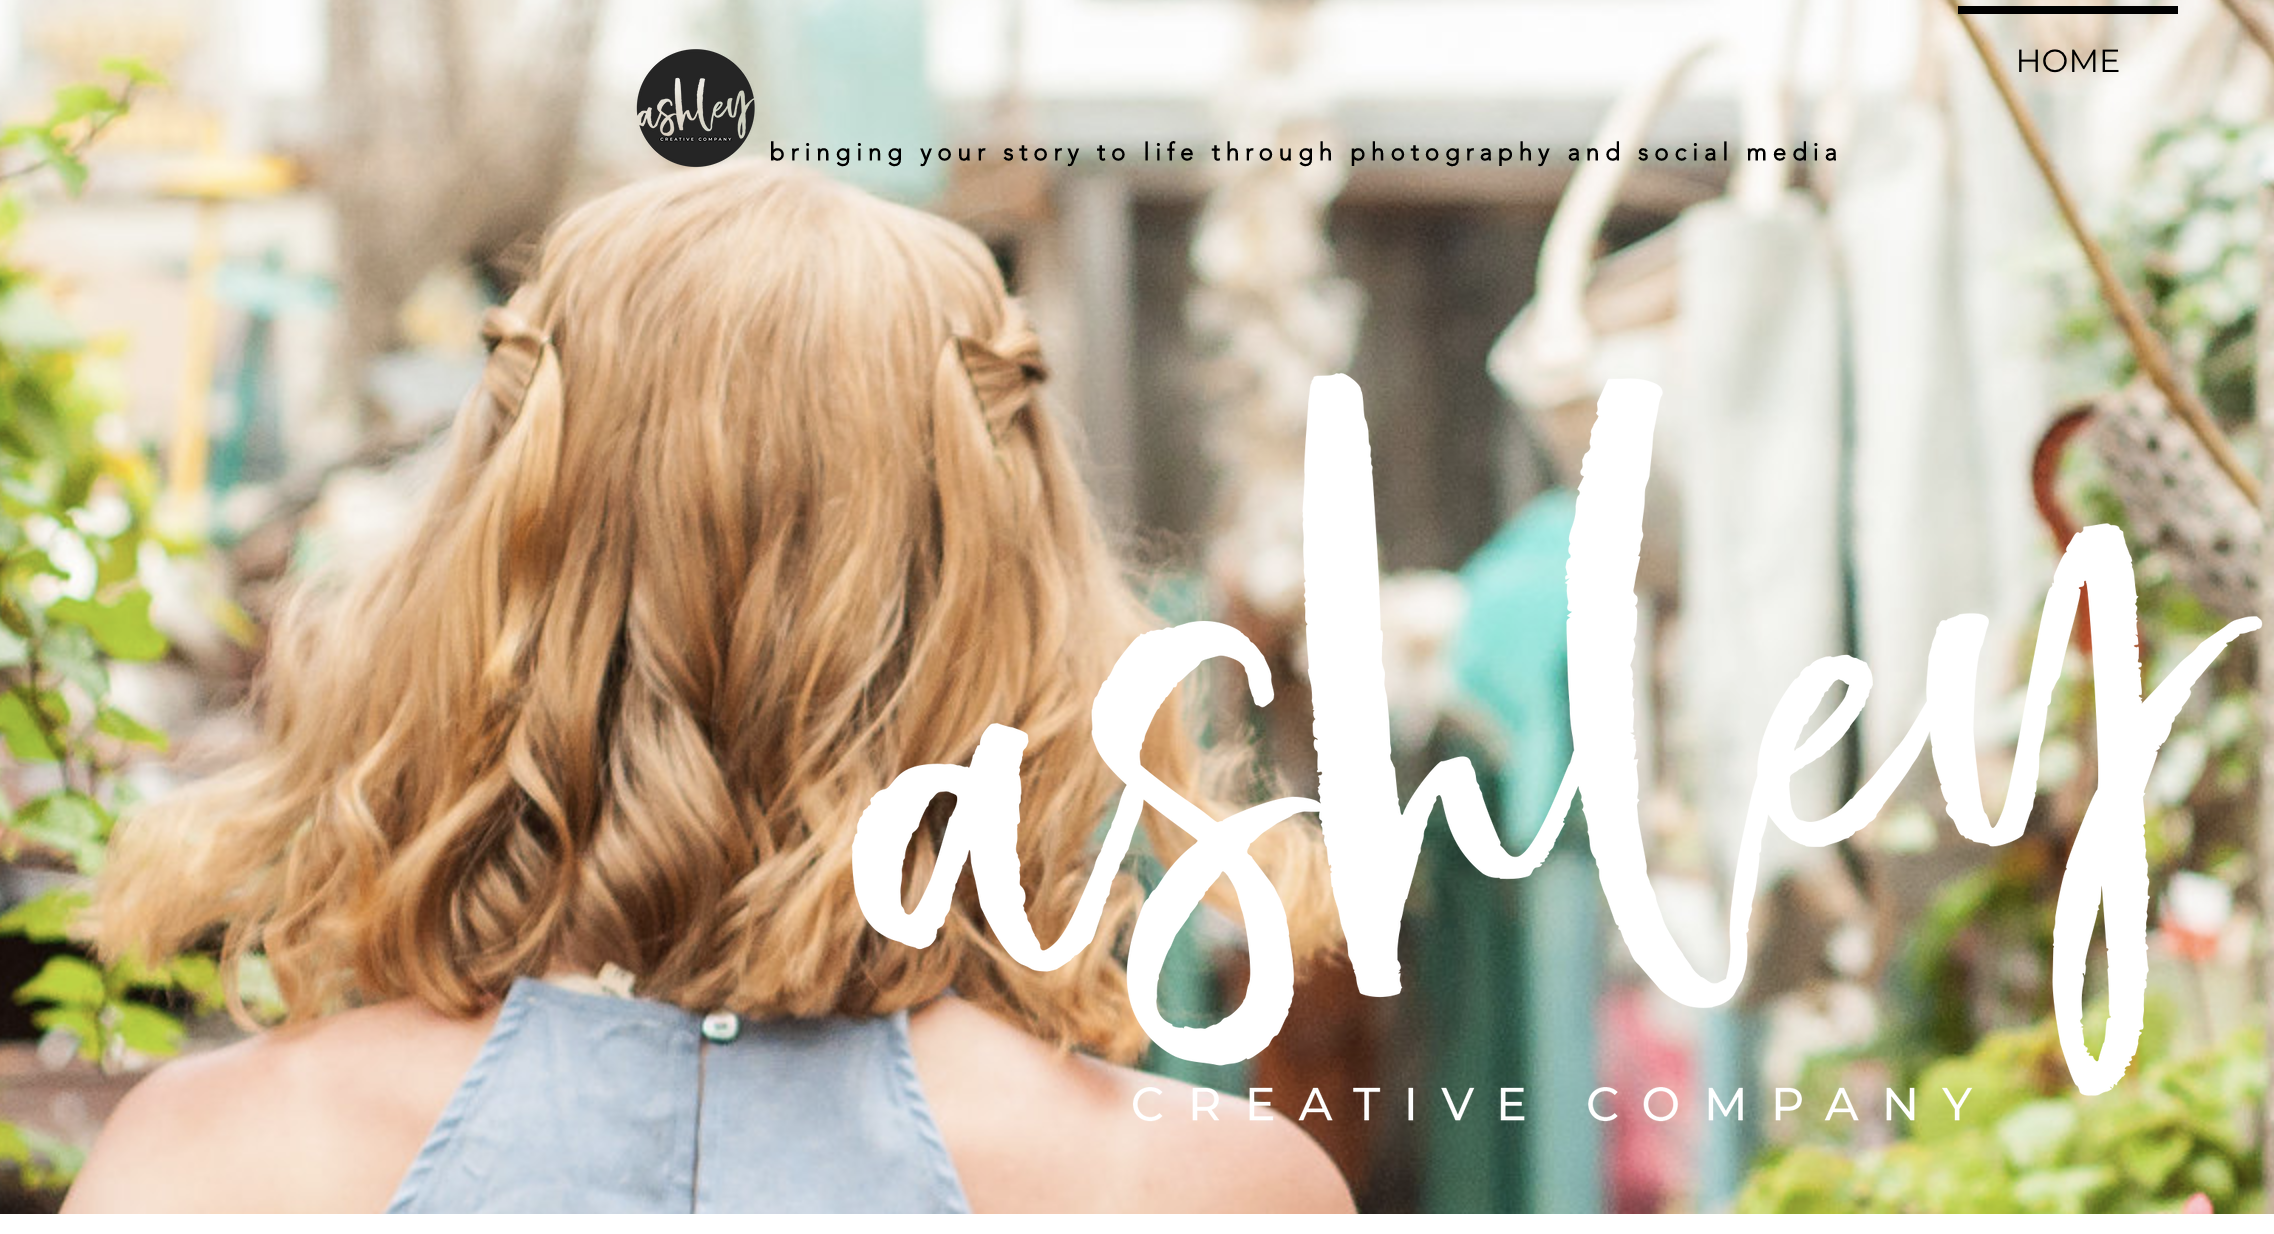 Ashley Creative Company - Your story matters. Ashley focuses on wedding photography, engagement photos, and family portraits and we love working with her.